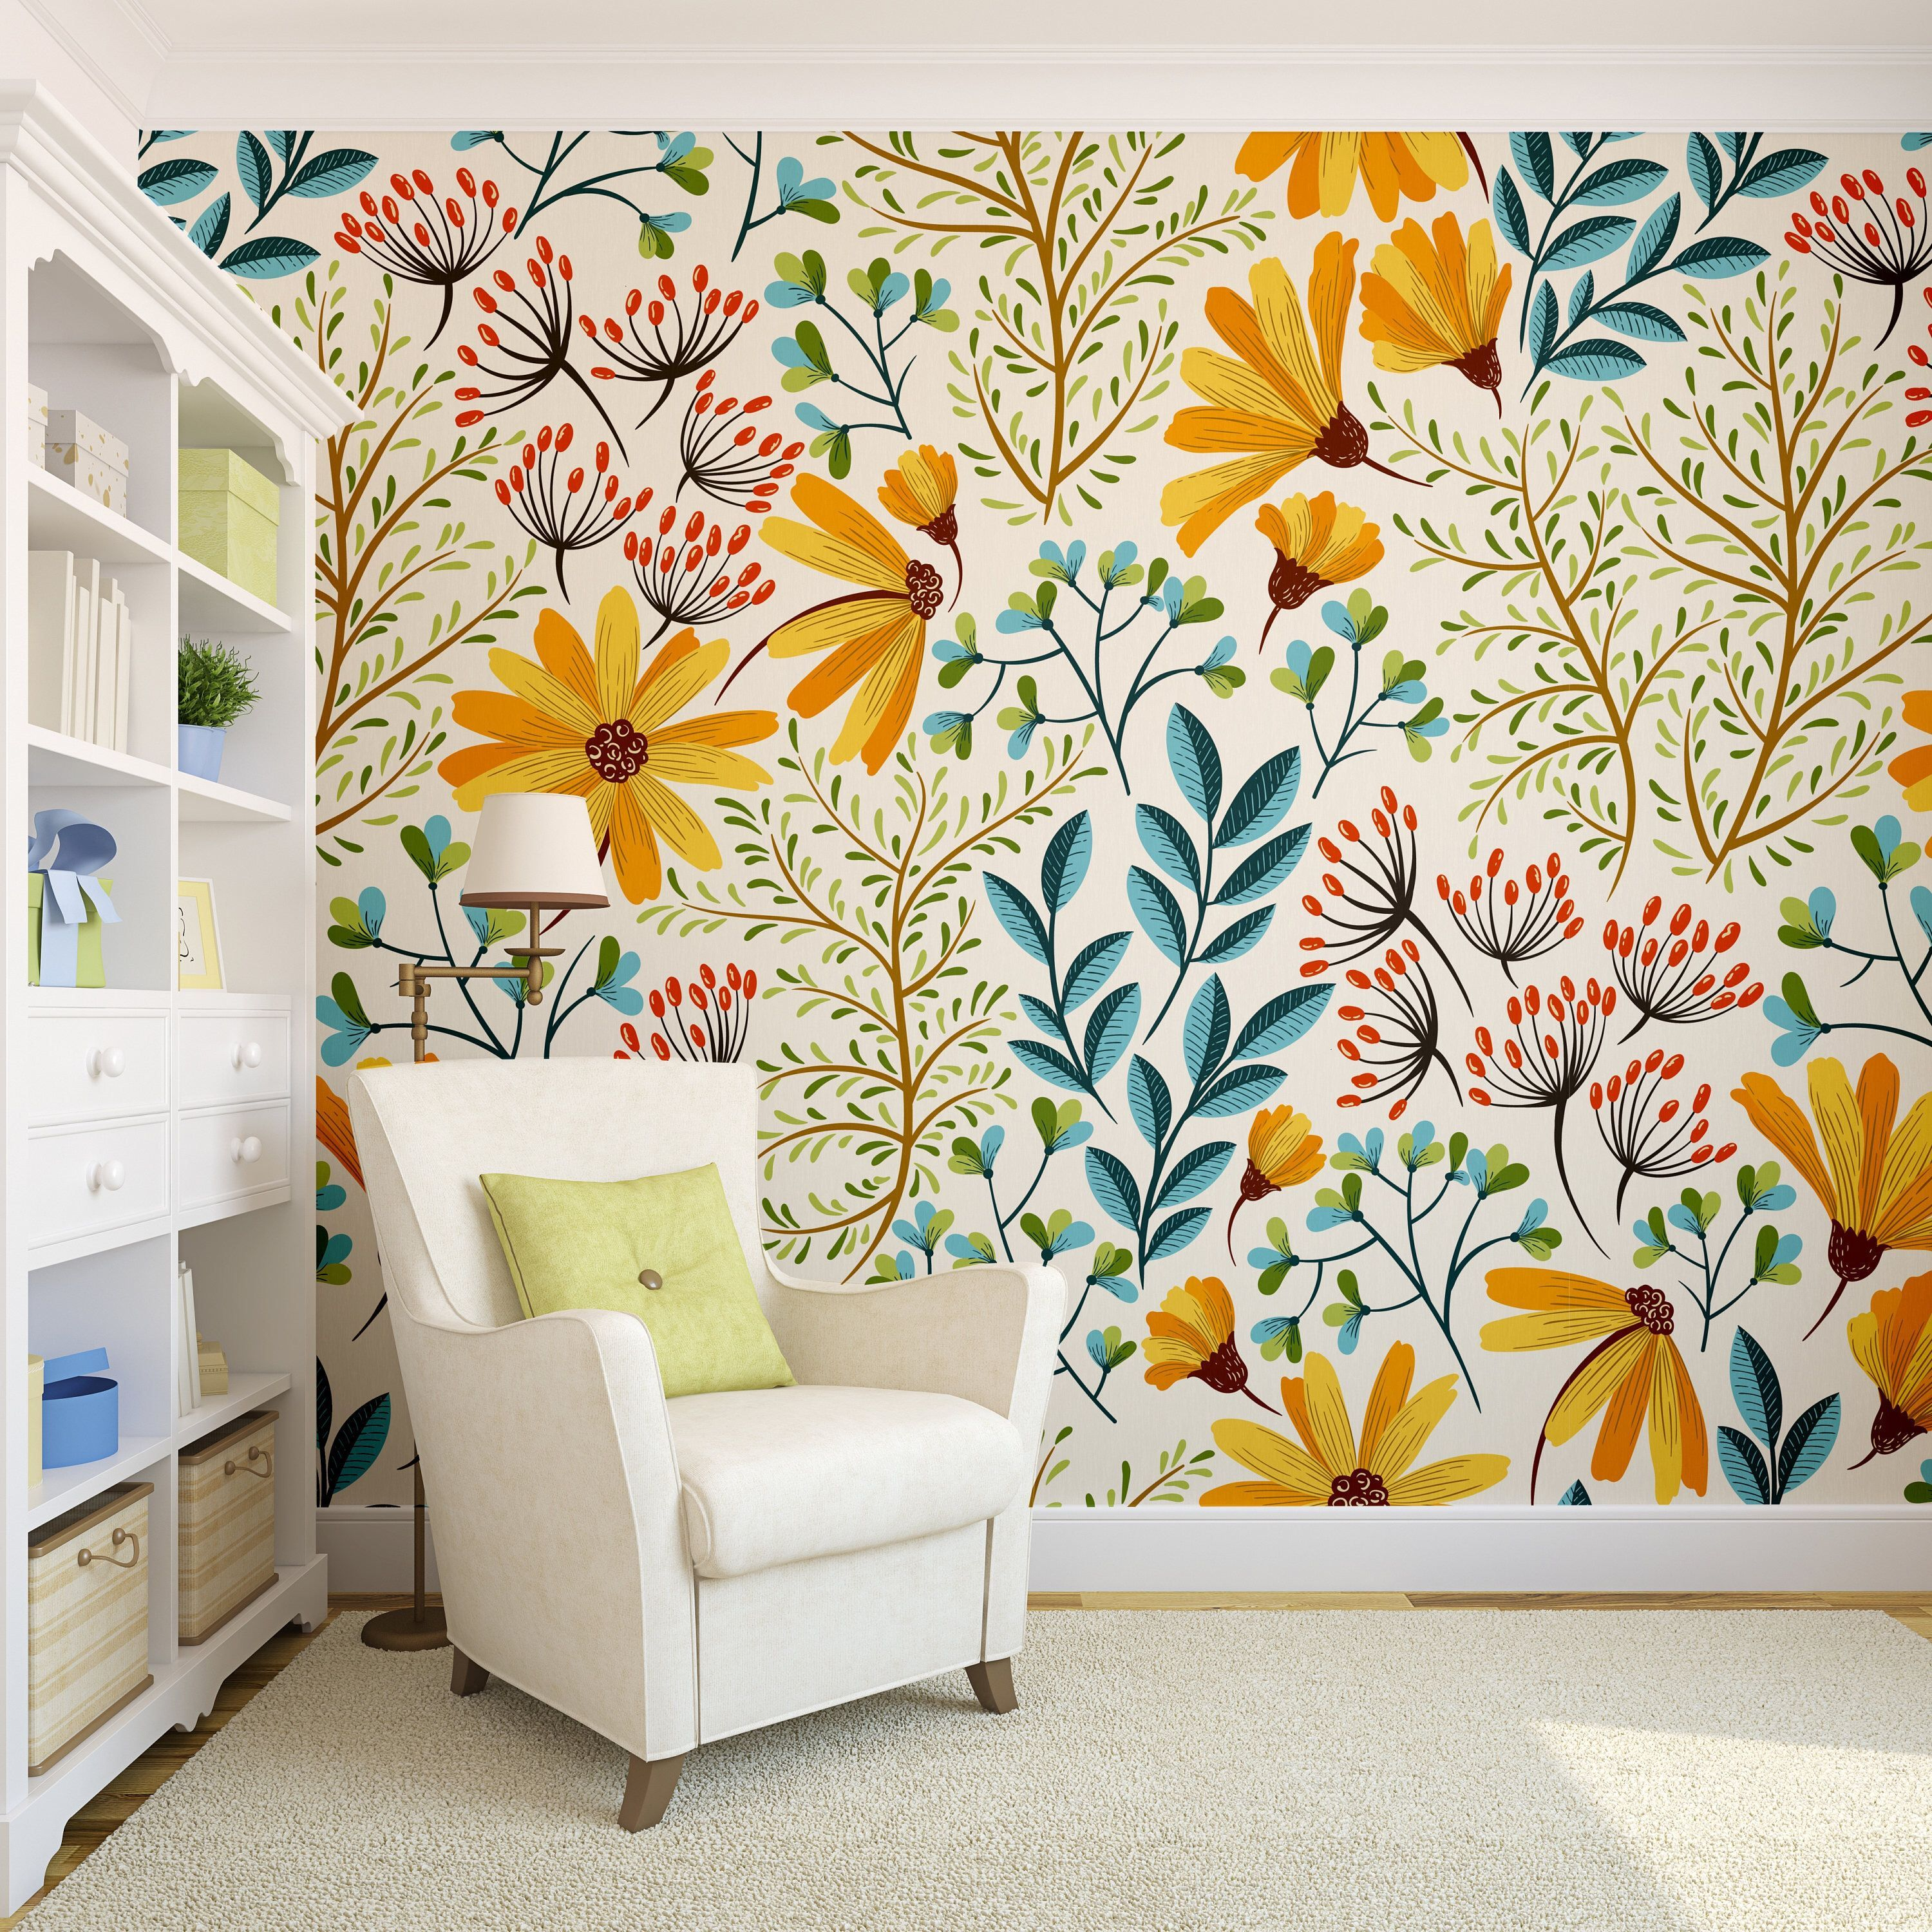 Removable Wallpaper Colorful Floral Wallpaper Peel And Stick Wallpaper Wall Mural Remova Wall Wallpaper Removable Wallpaper Home Wallpaper